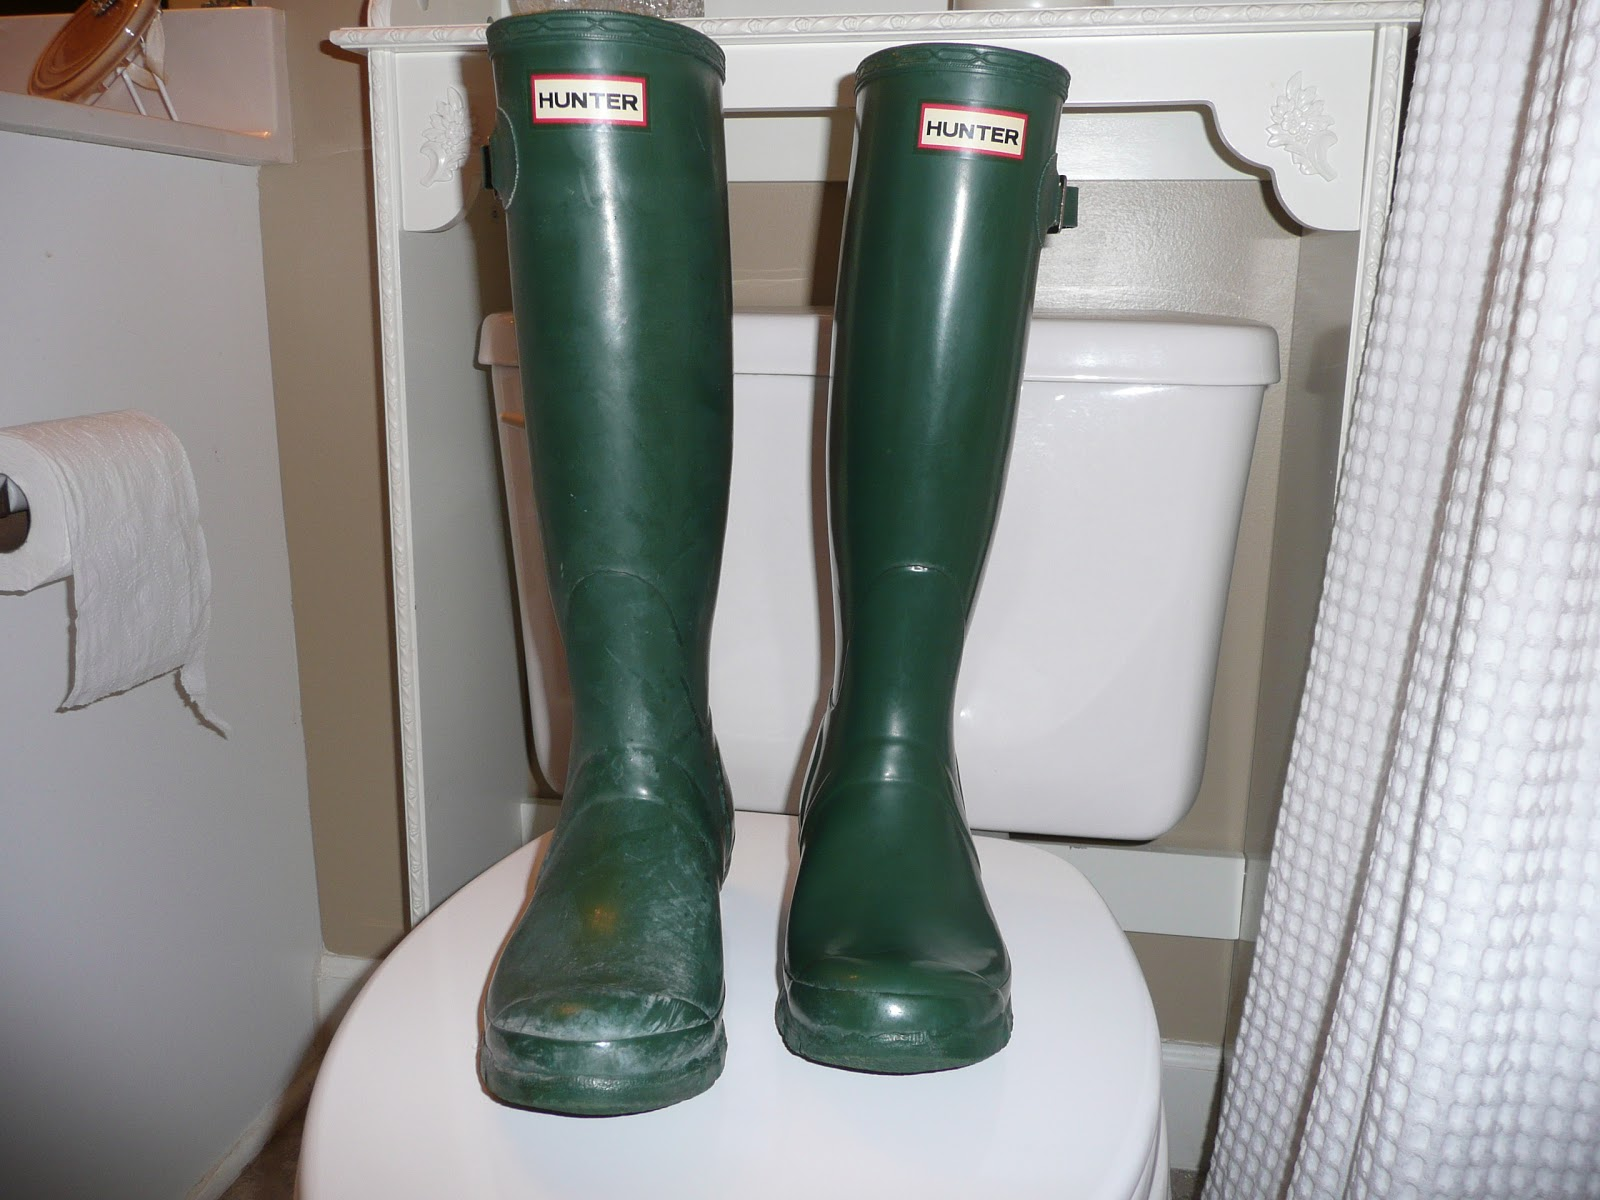 How To Take Care Of Hunter Boots